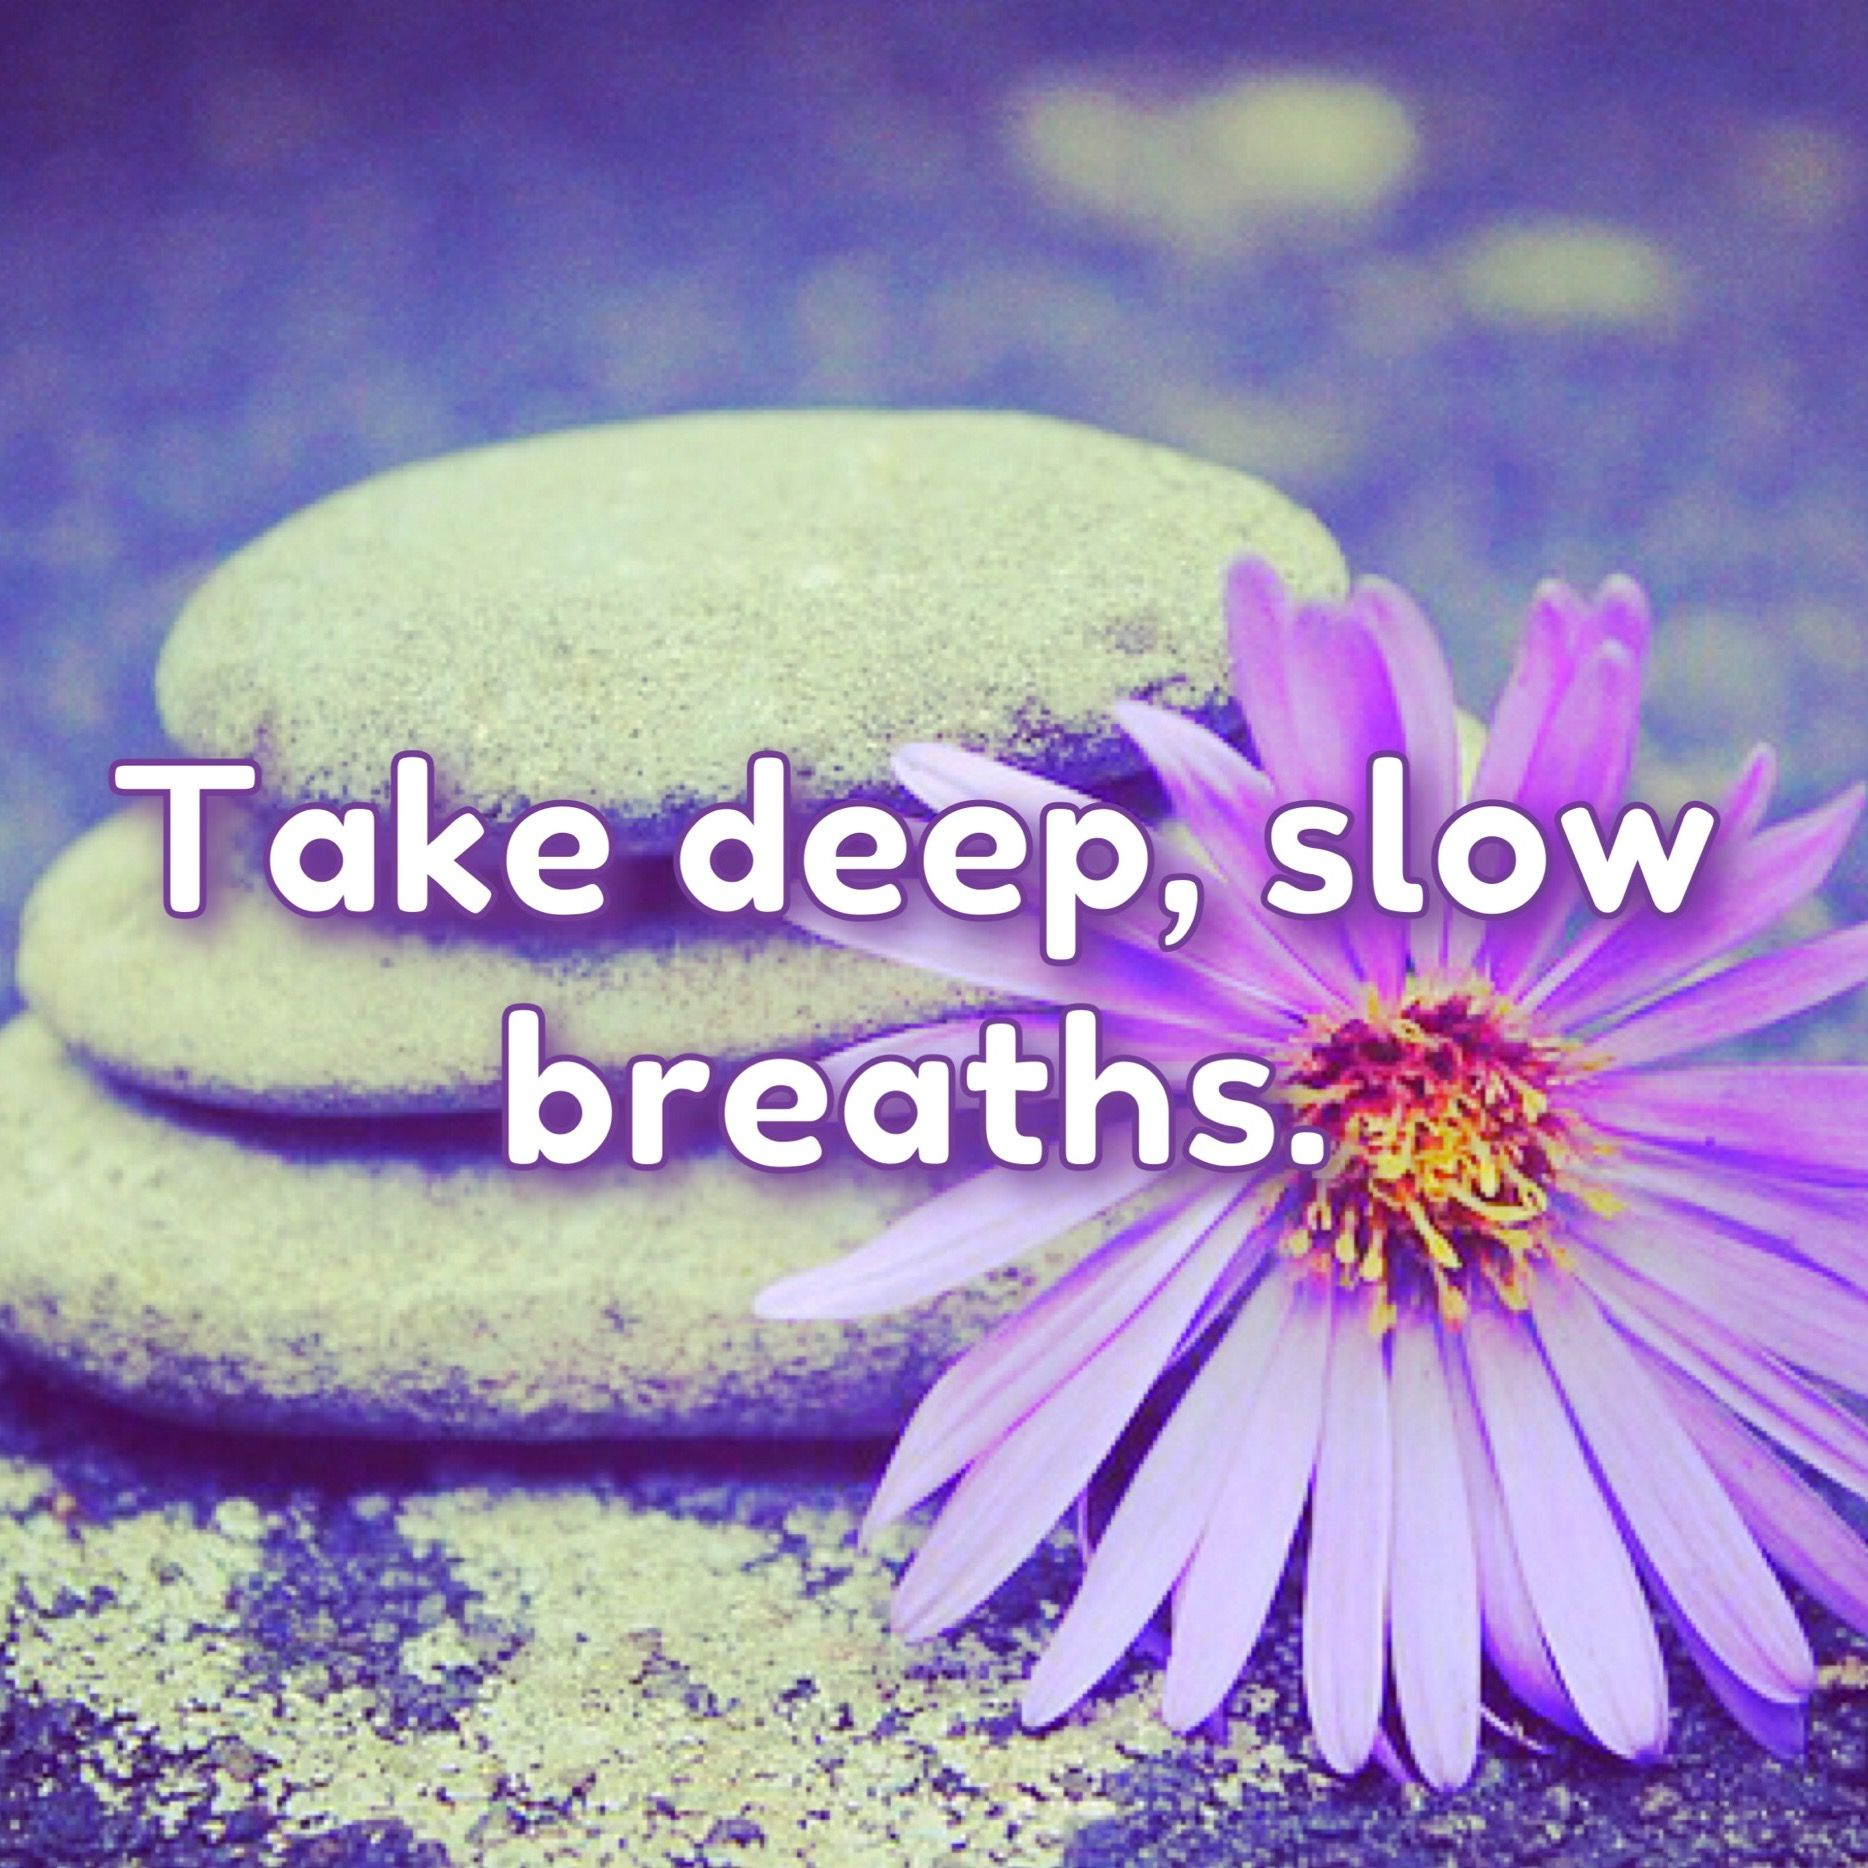 Sometimes the best thing you can do for your health is to take deep breaths.